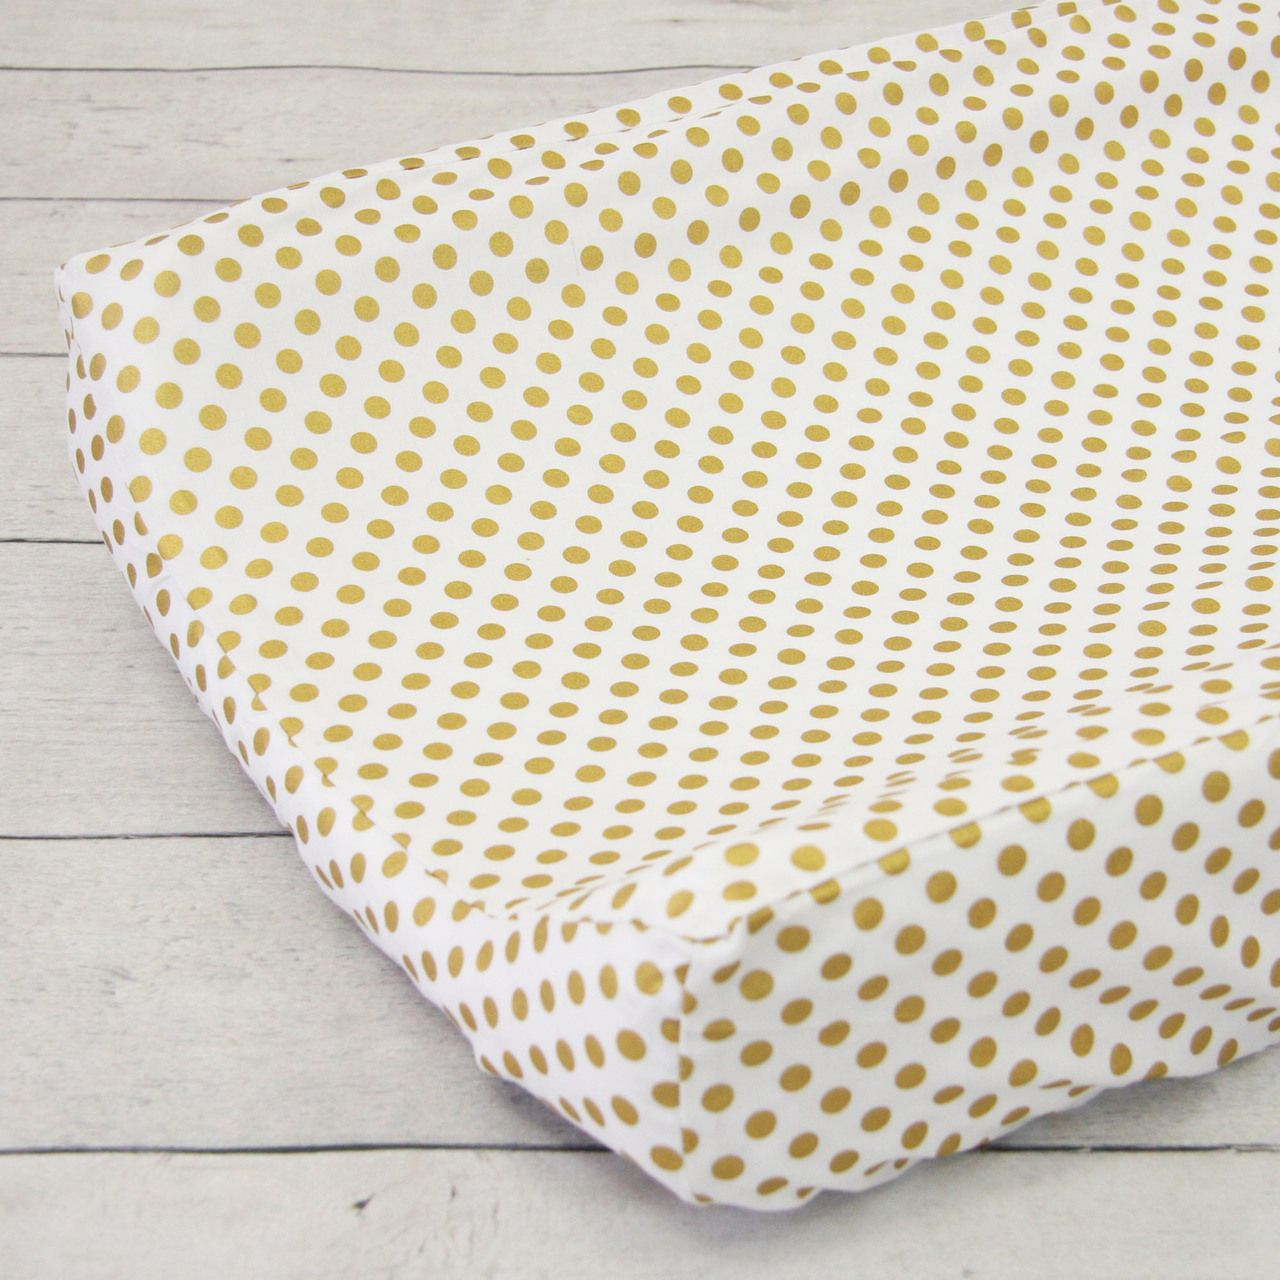 Marion S Coral And Gold Polka Dot Nursery: A Caden Lane Gold Dot Changing Pad Cover Is Perfect For A